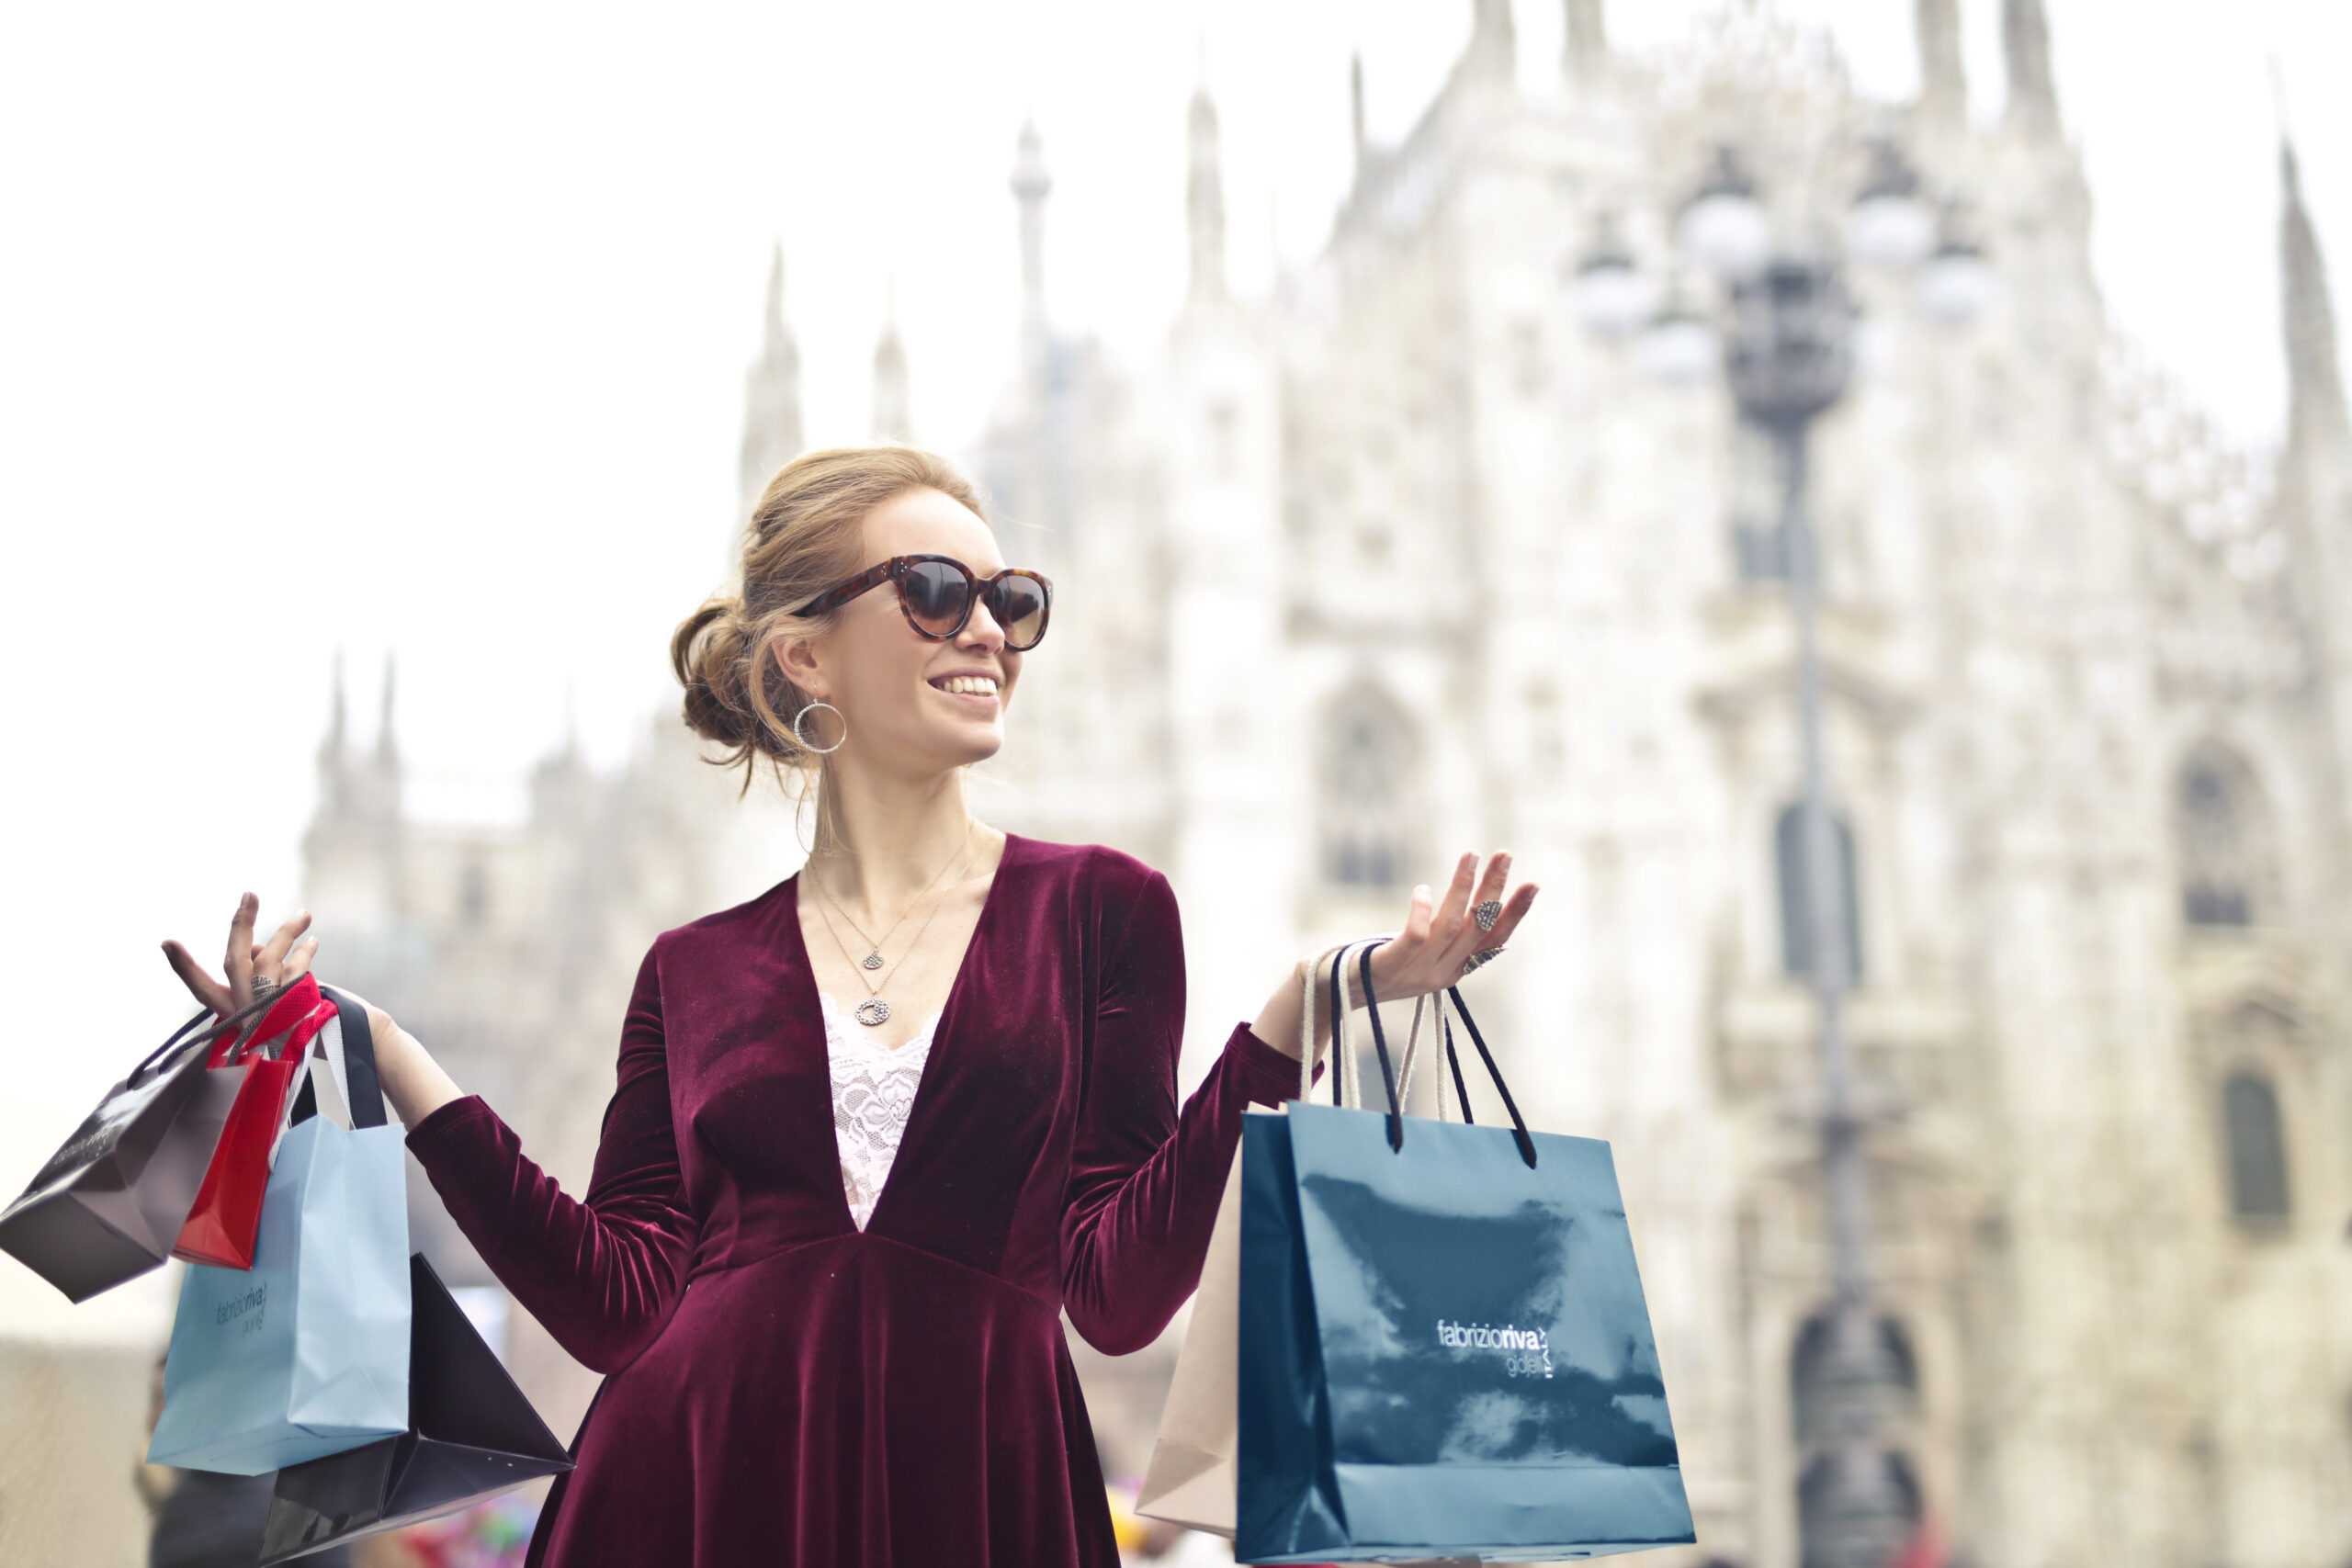 07 Psychological Tips to Spend Less Money While Shopping